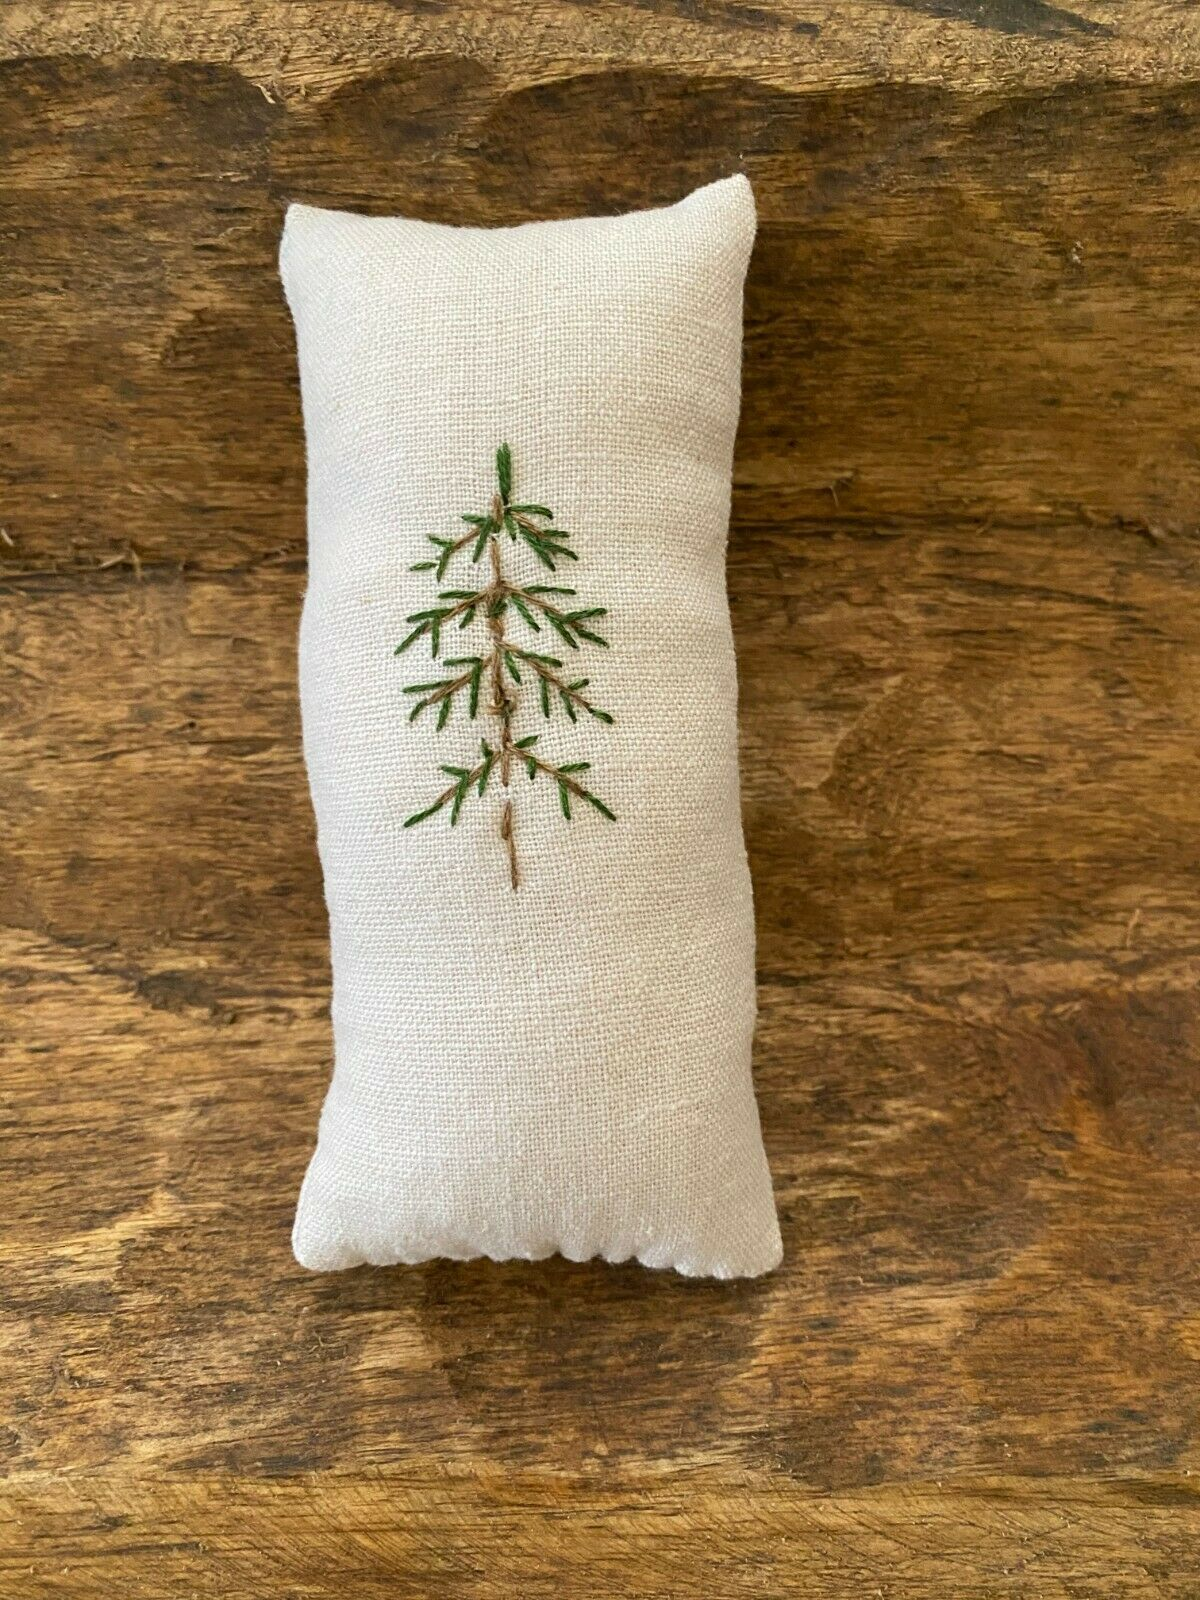 Primitive Stitchery Hand Stitched Christmas Tree Vintage Linen Ornie Farmhouse - $5.99